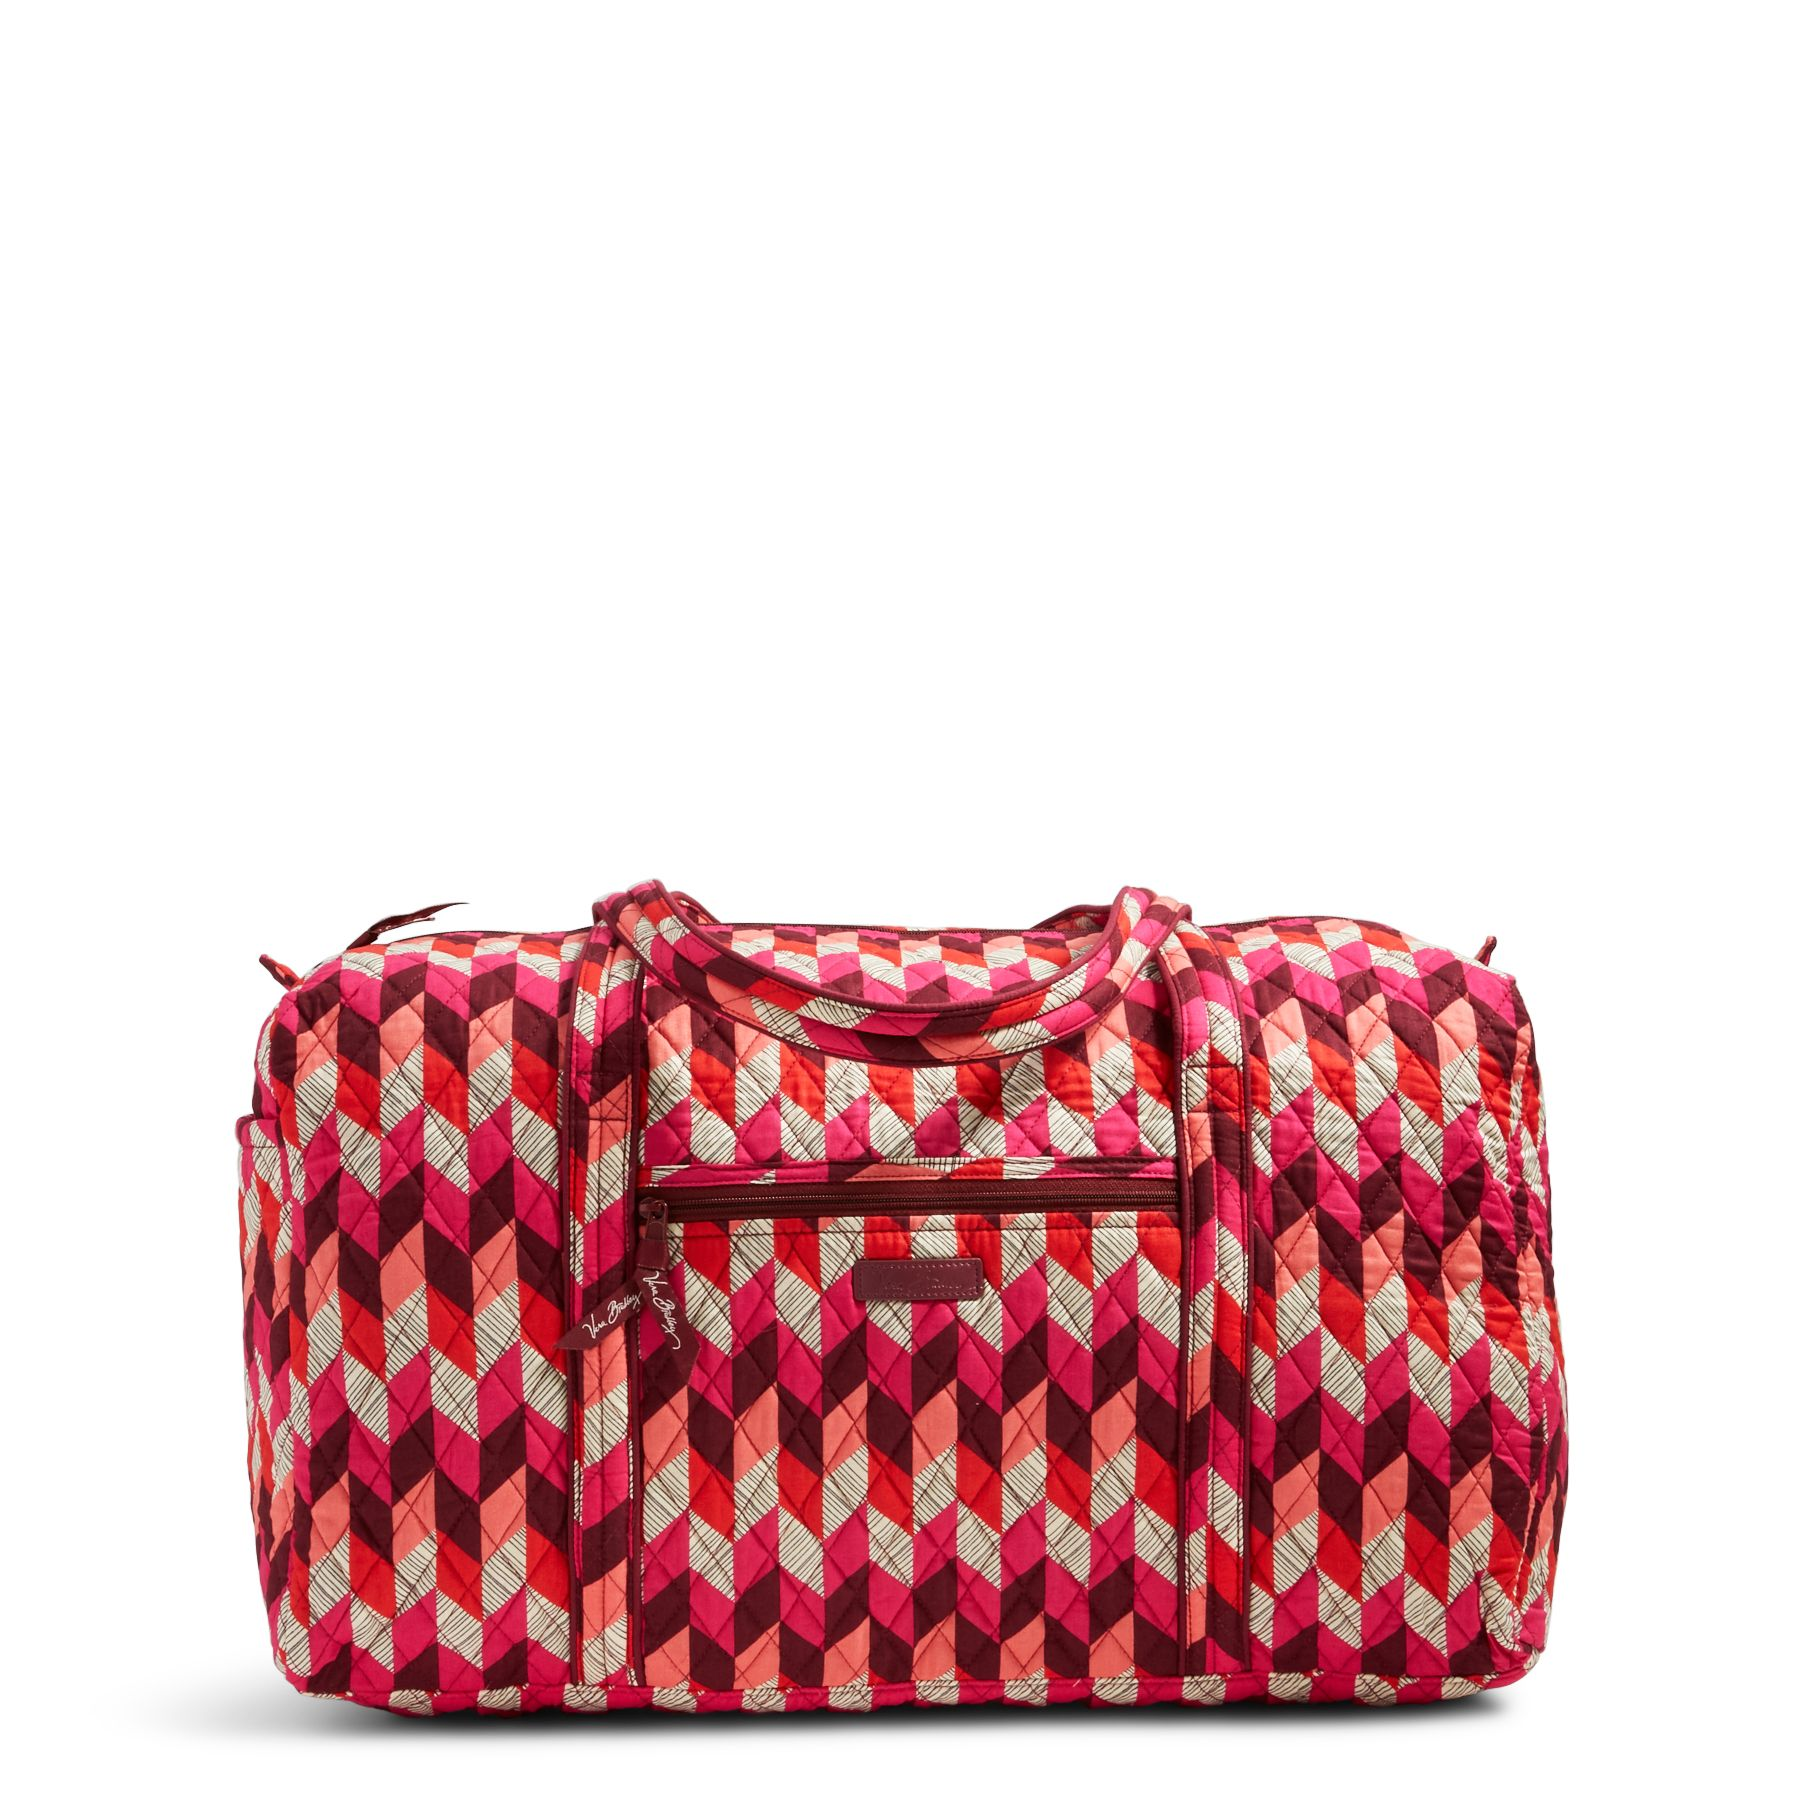 Vera-Bradley-Large-Duffel-Travel-Bag